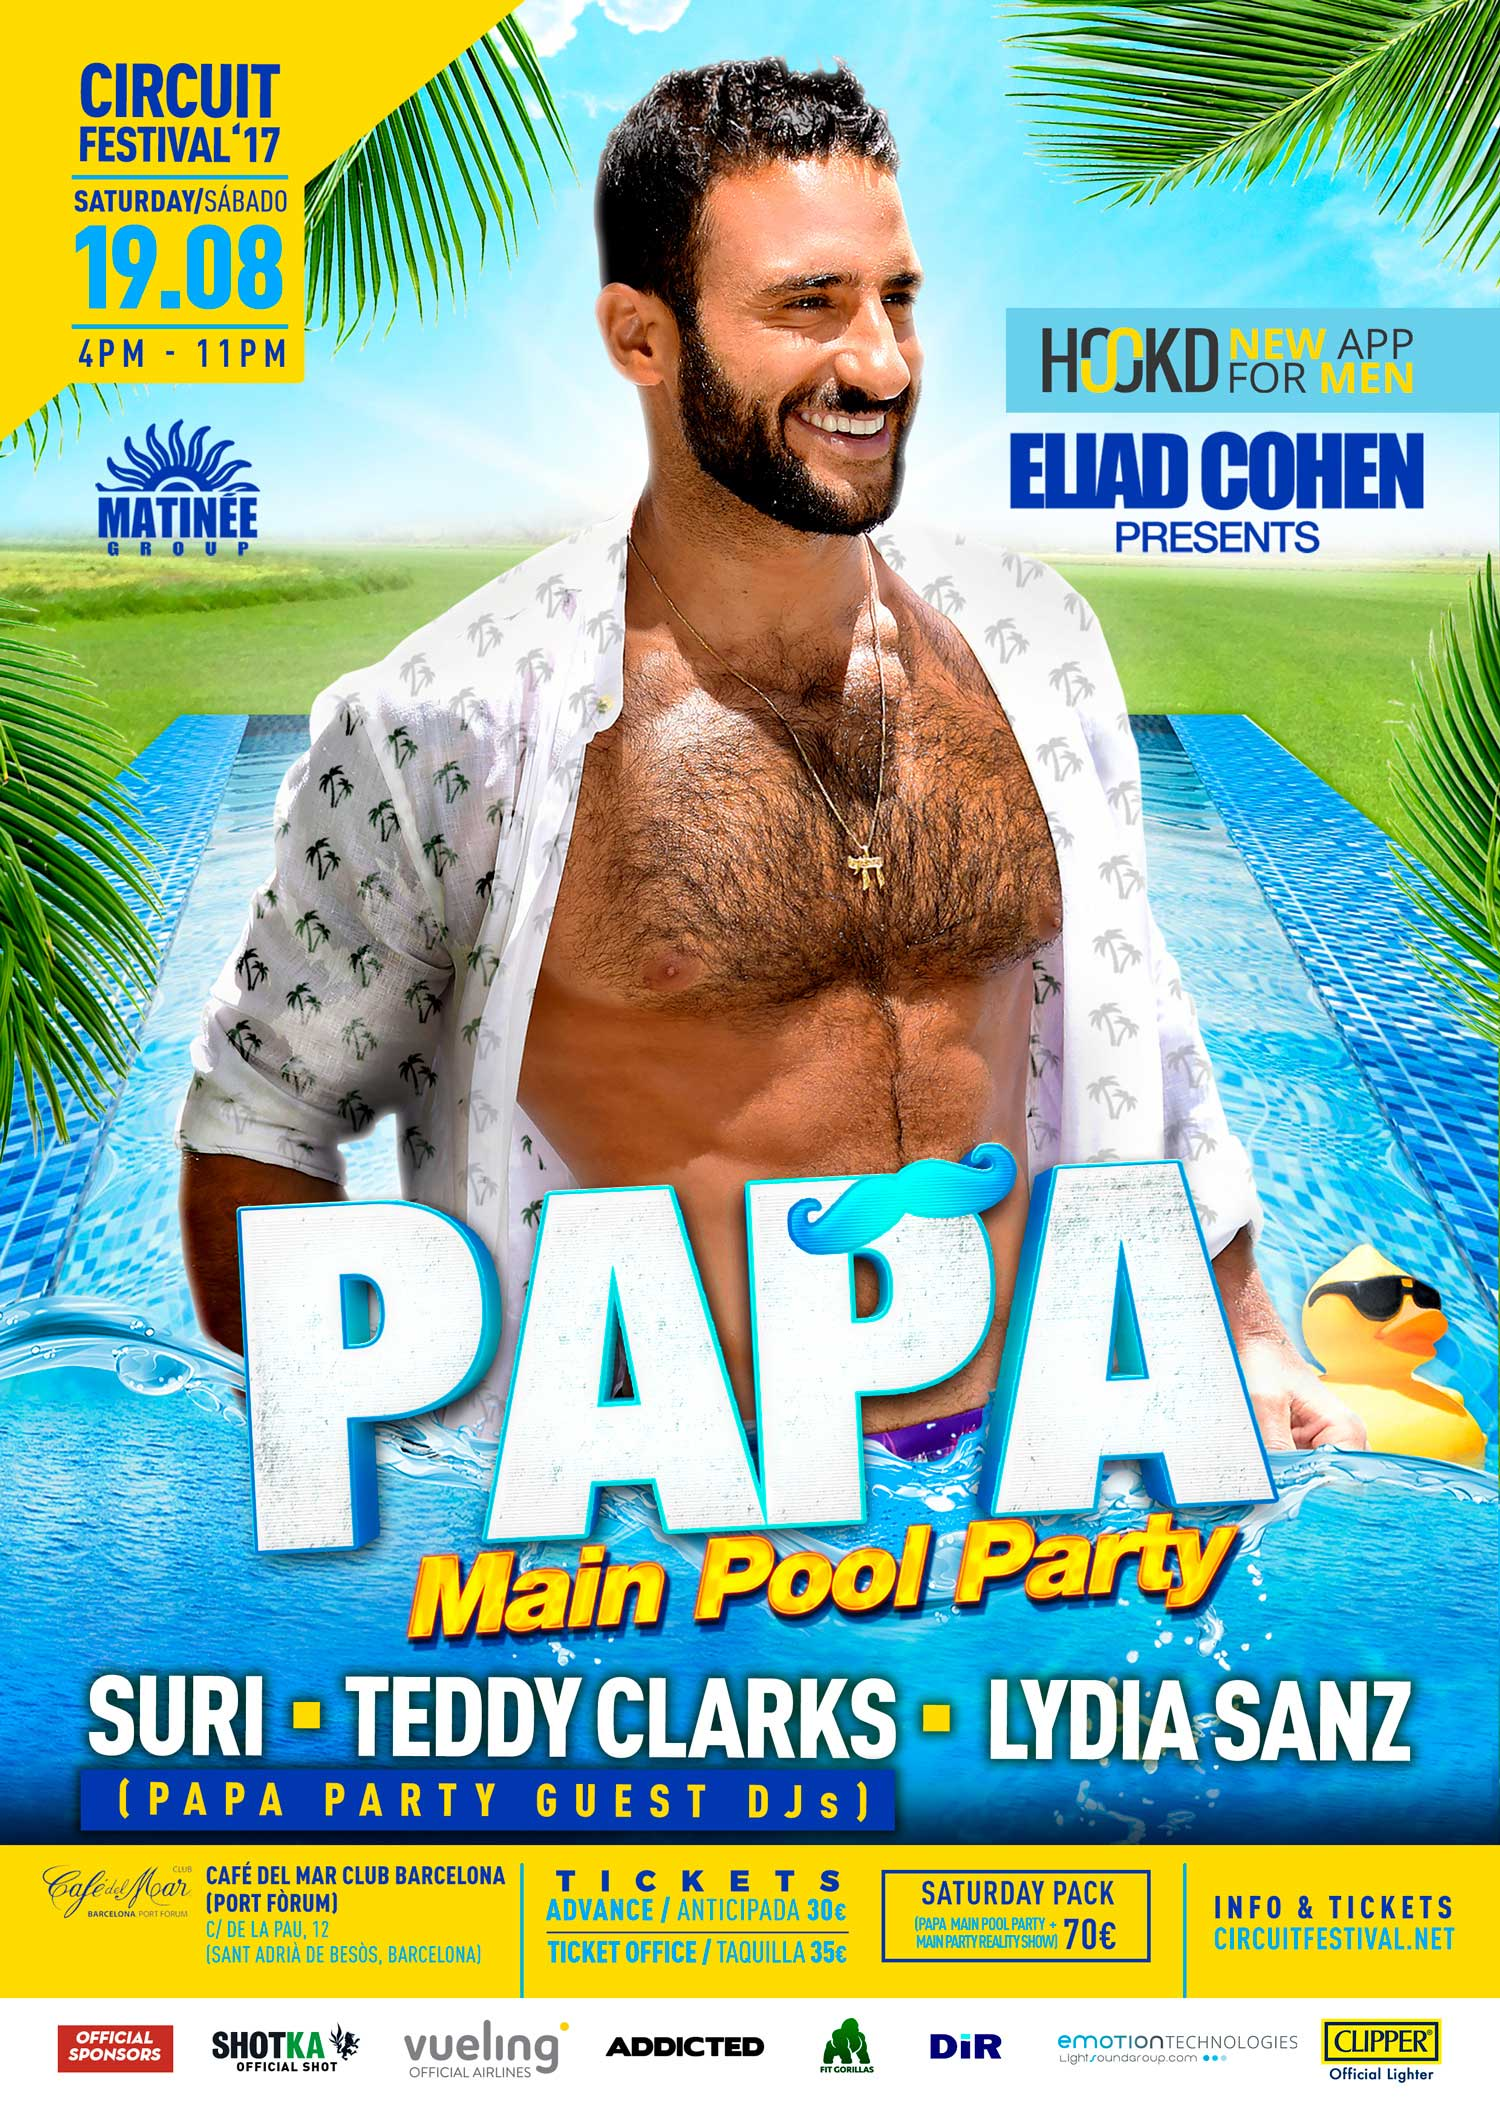 Circuit17_MAIN-POOL-PARTY_flyer_version-web-2 (2)